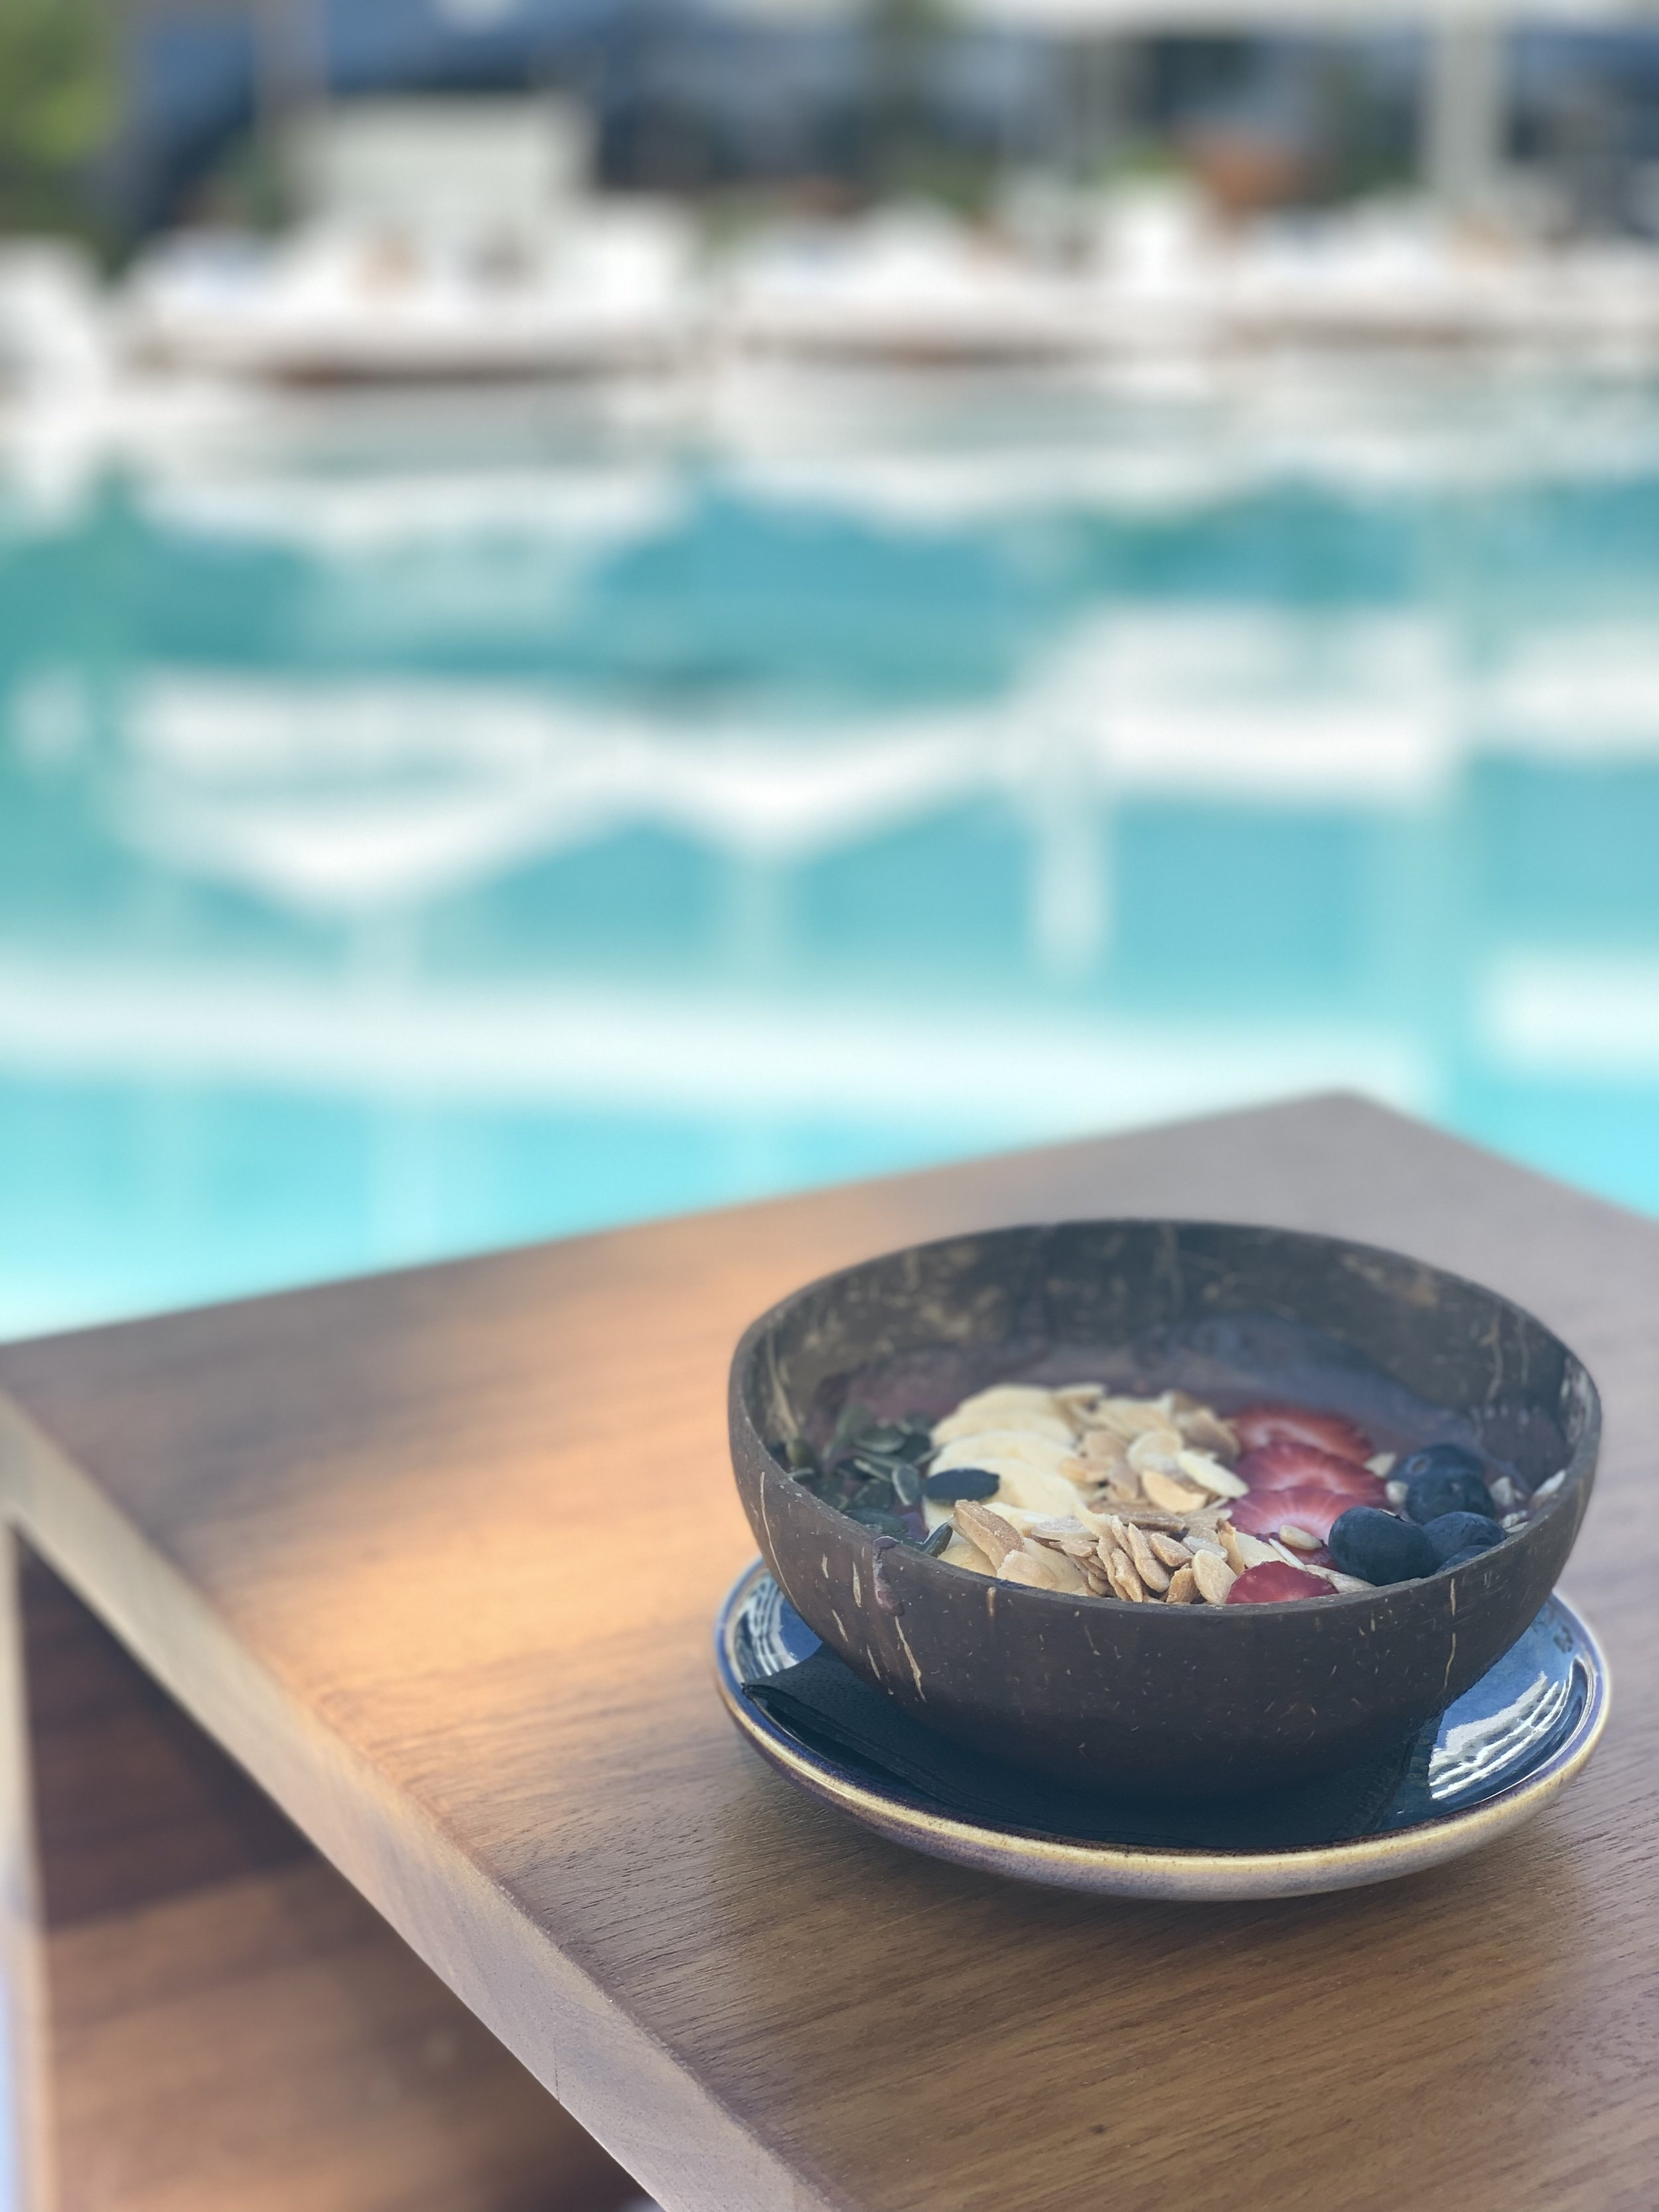 Acai Bowl Ibiza Bay Nobu Hotel Ibiza | Vanilla Rose Weddings Oxford Wedding Planner